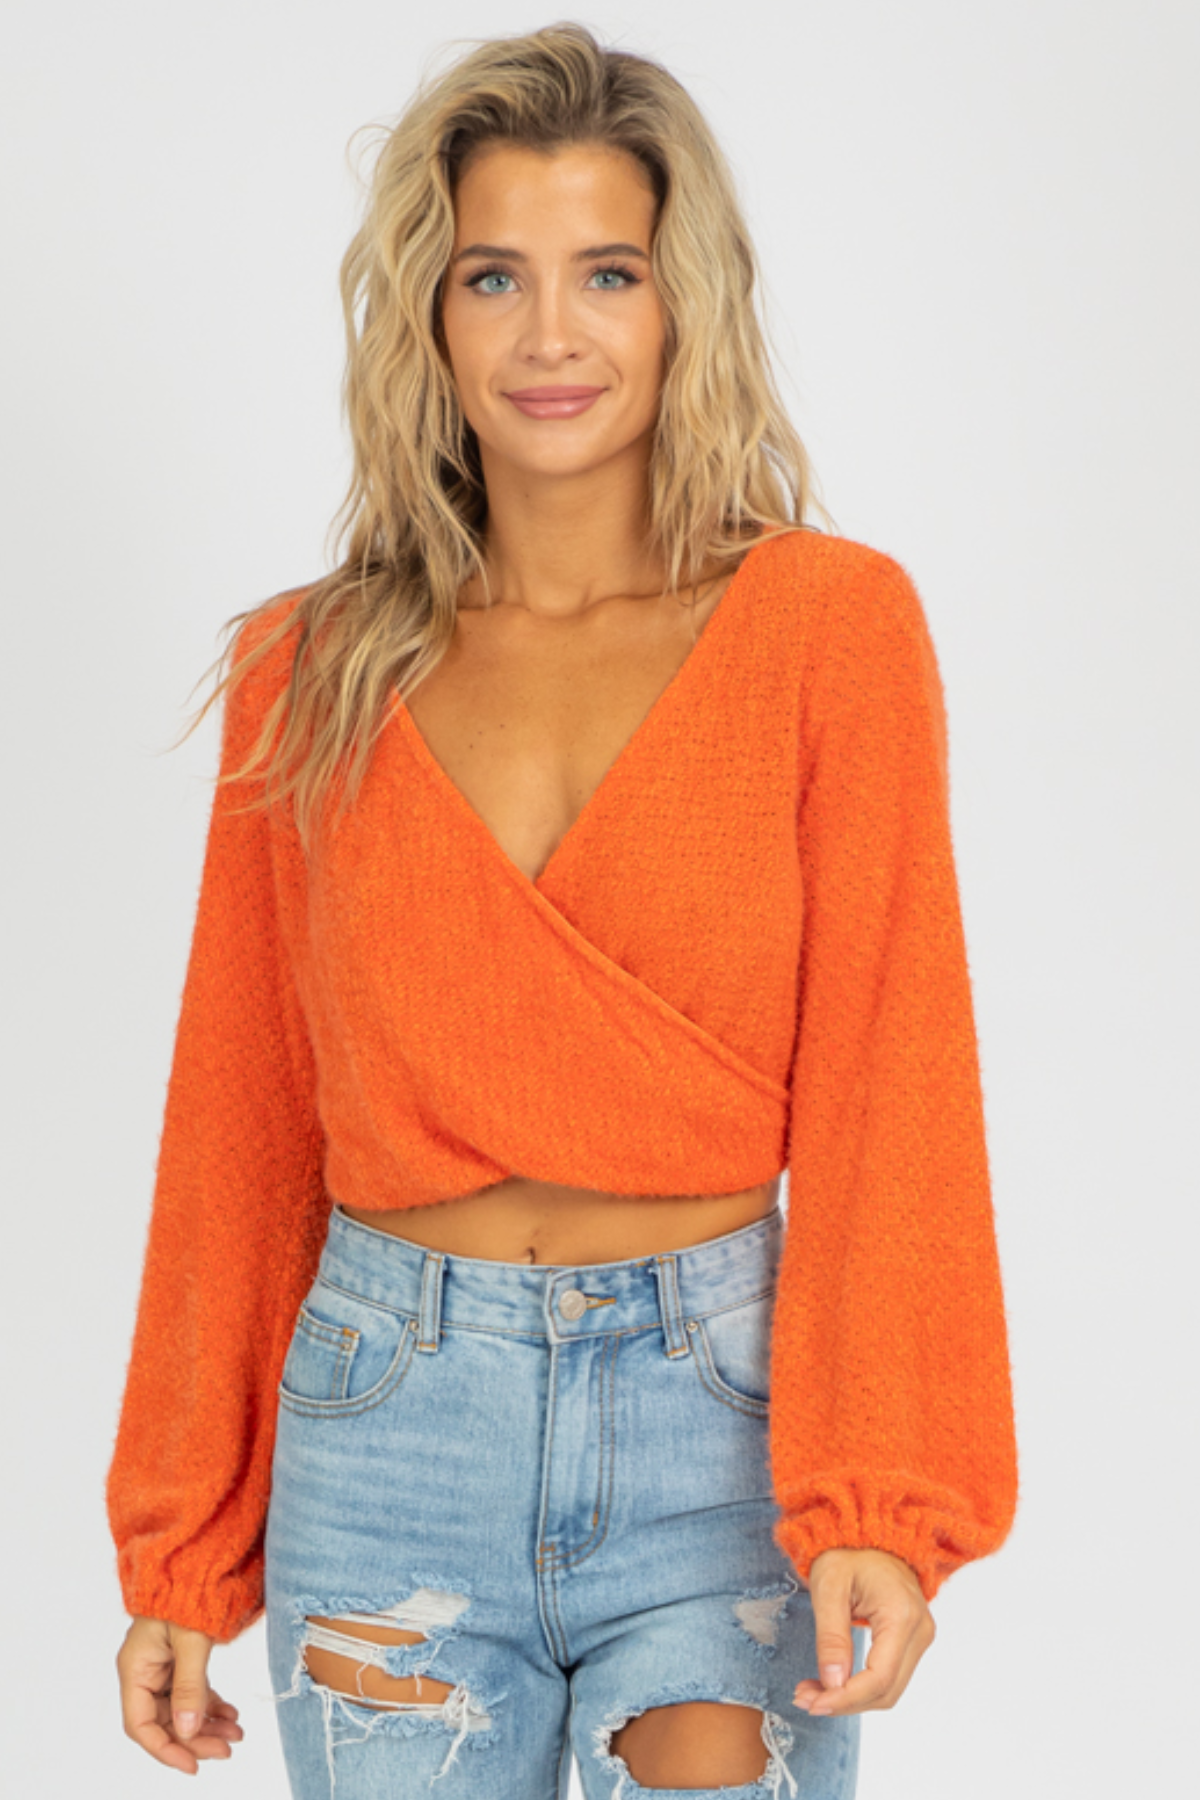 ORANGE SURPLICE KNIT TOP